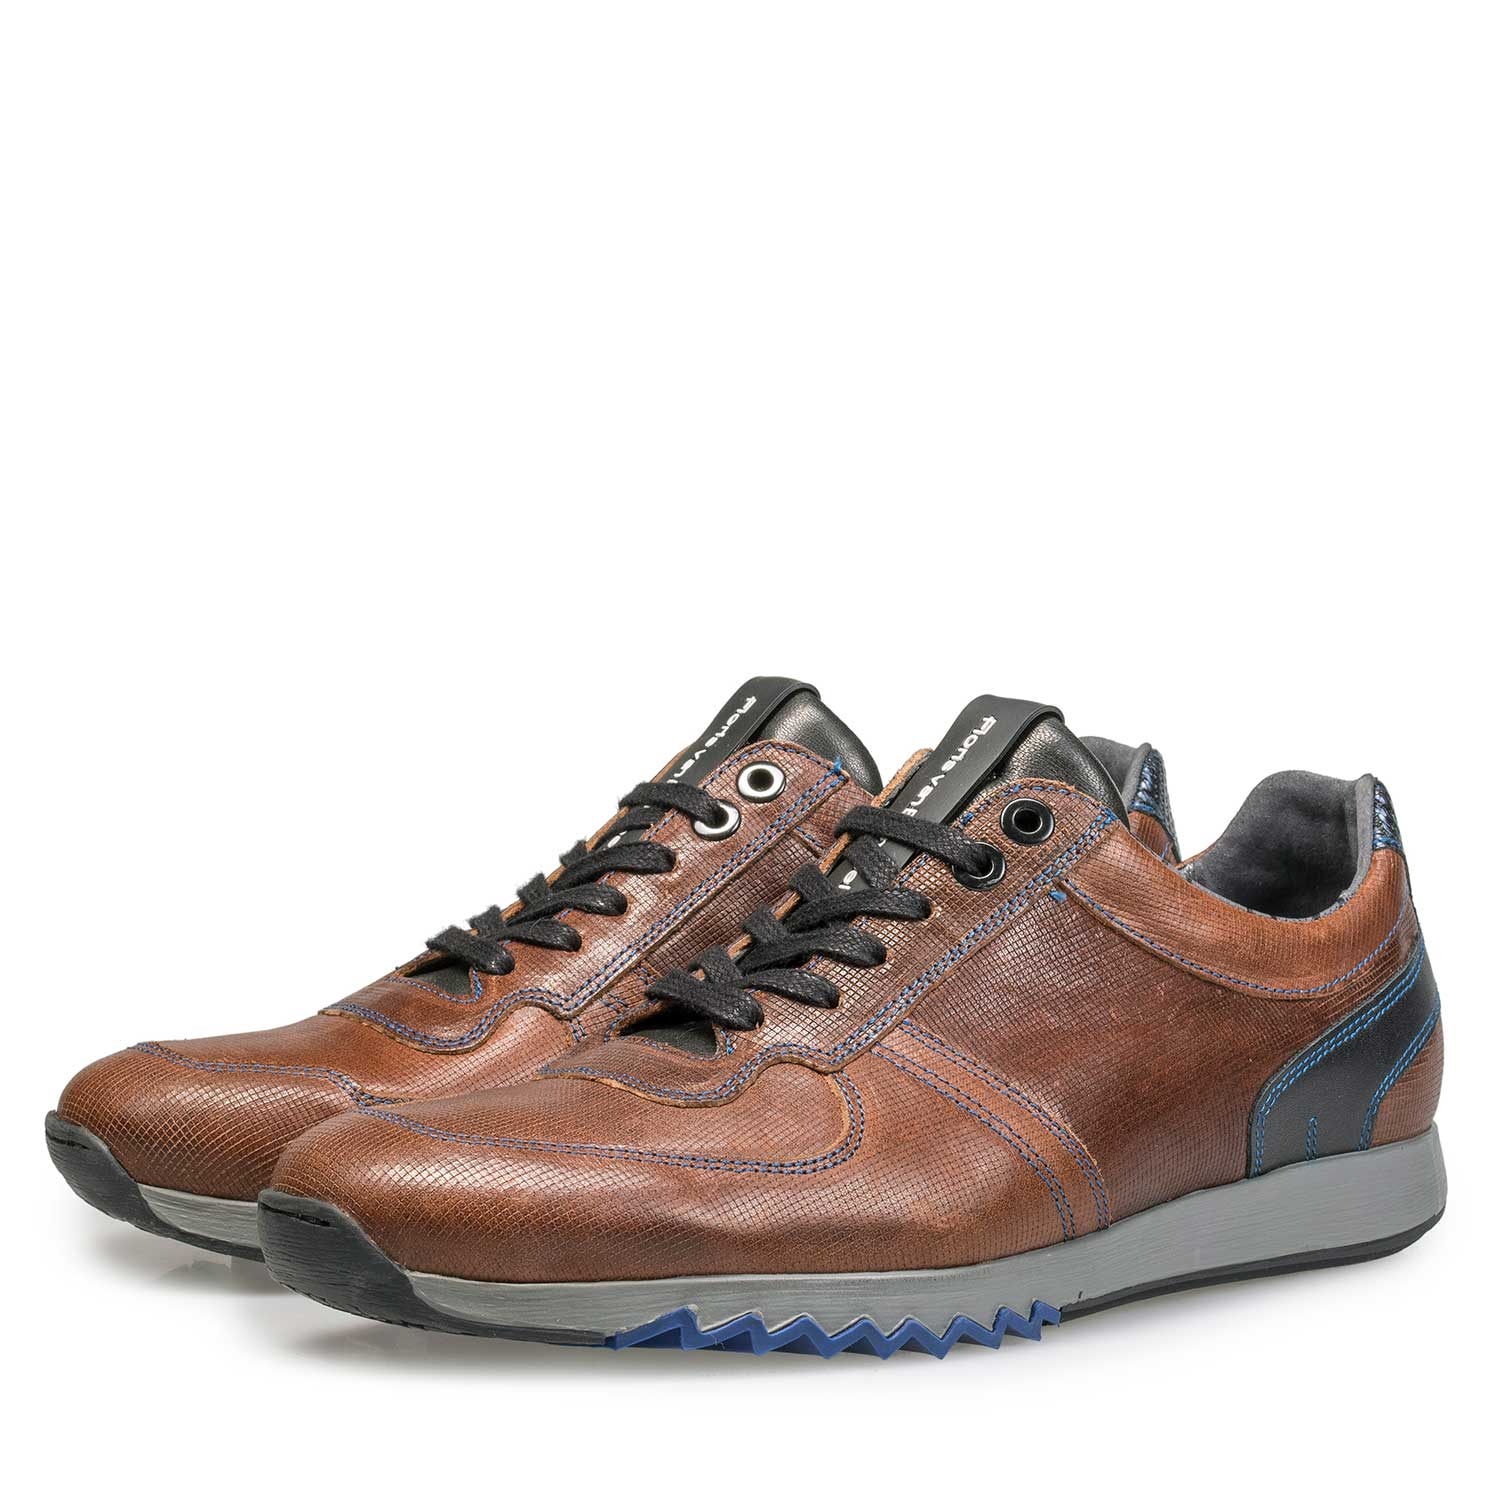 16171/10 - Brown sneaker with cobalt blue stitching